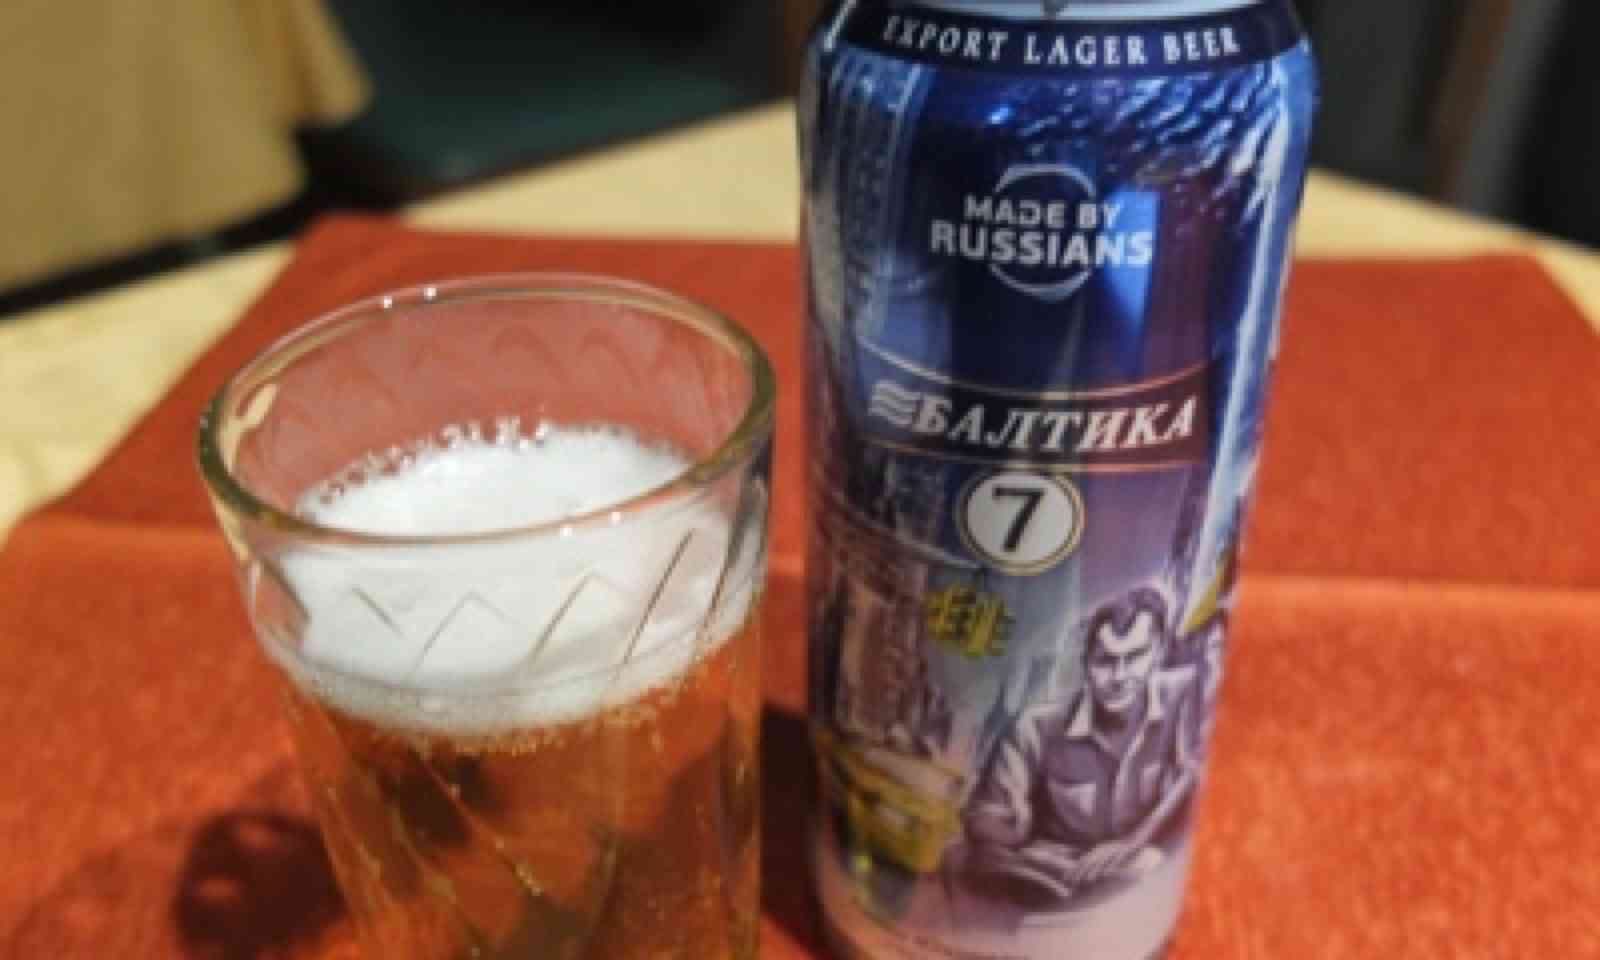 Beer made by Russians (Matthew Woodward)